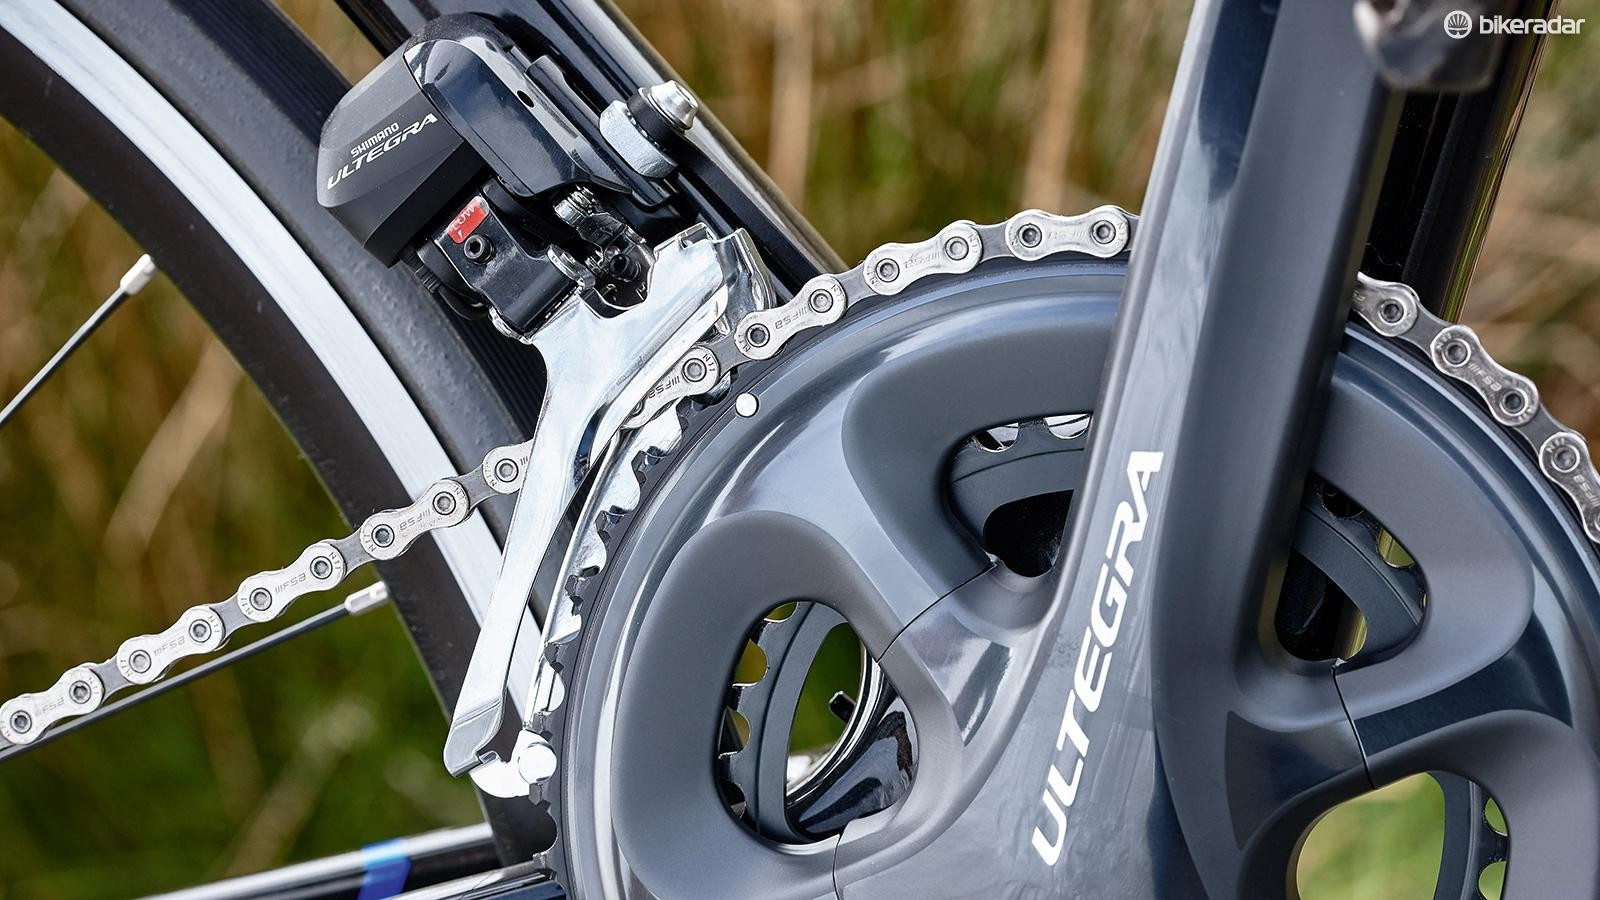 The inclusion of electronic Ultegra Di2 is great for a bike at this price